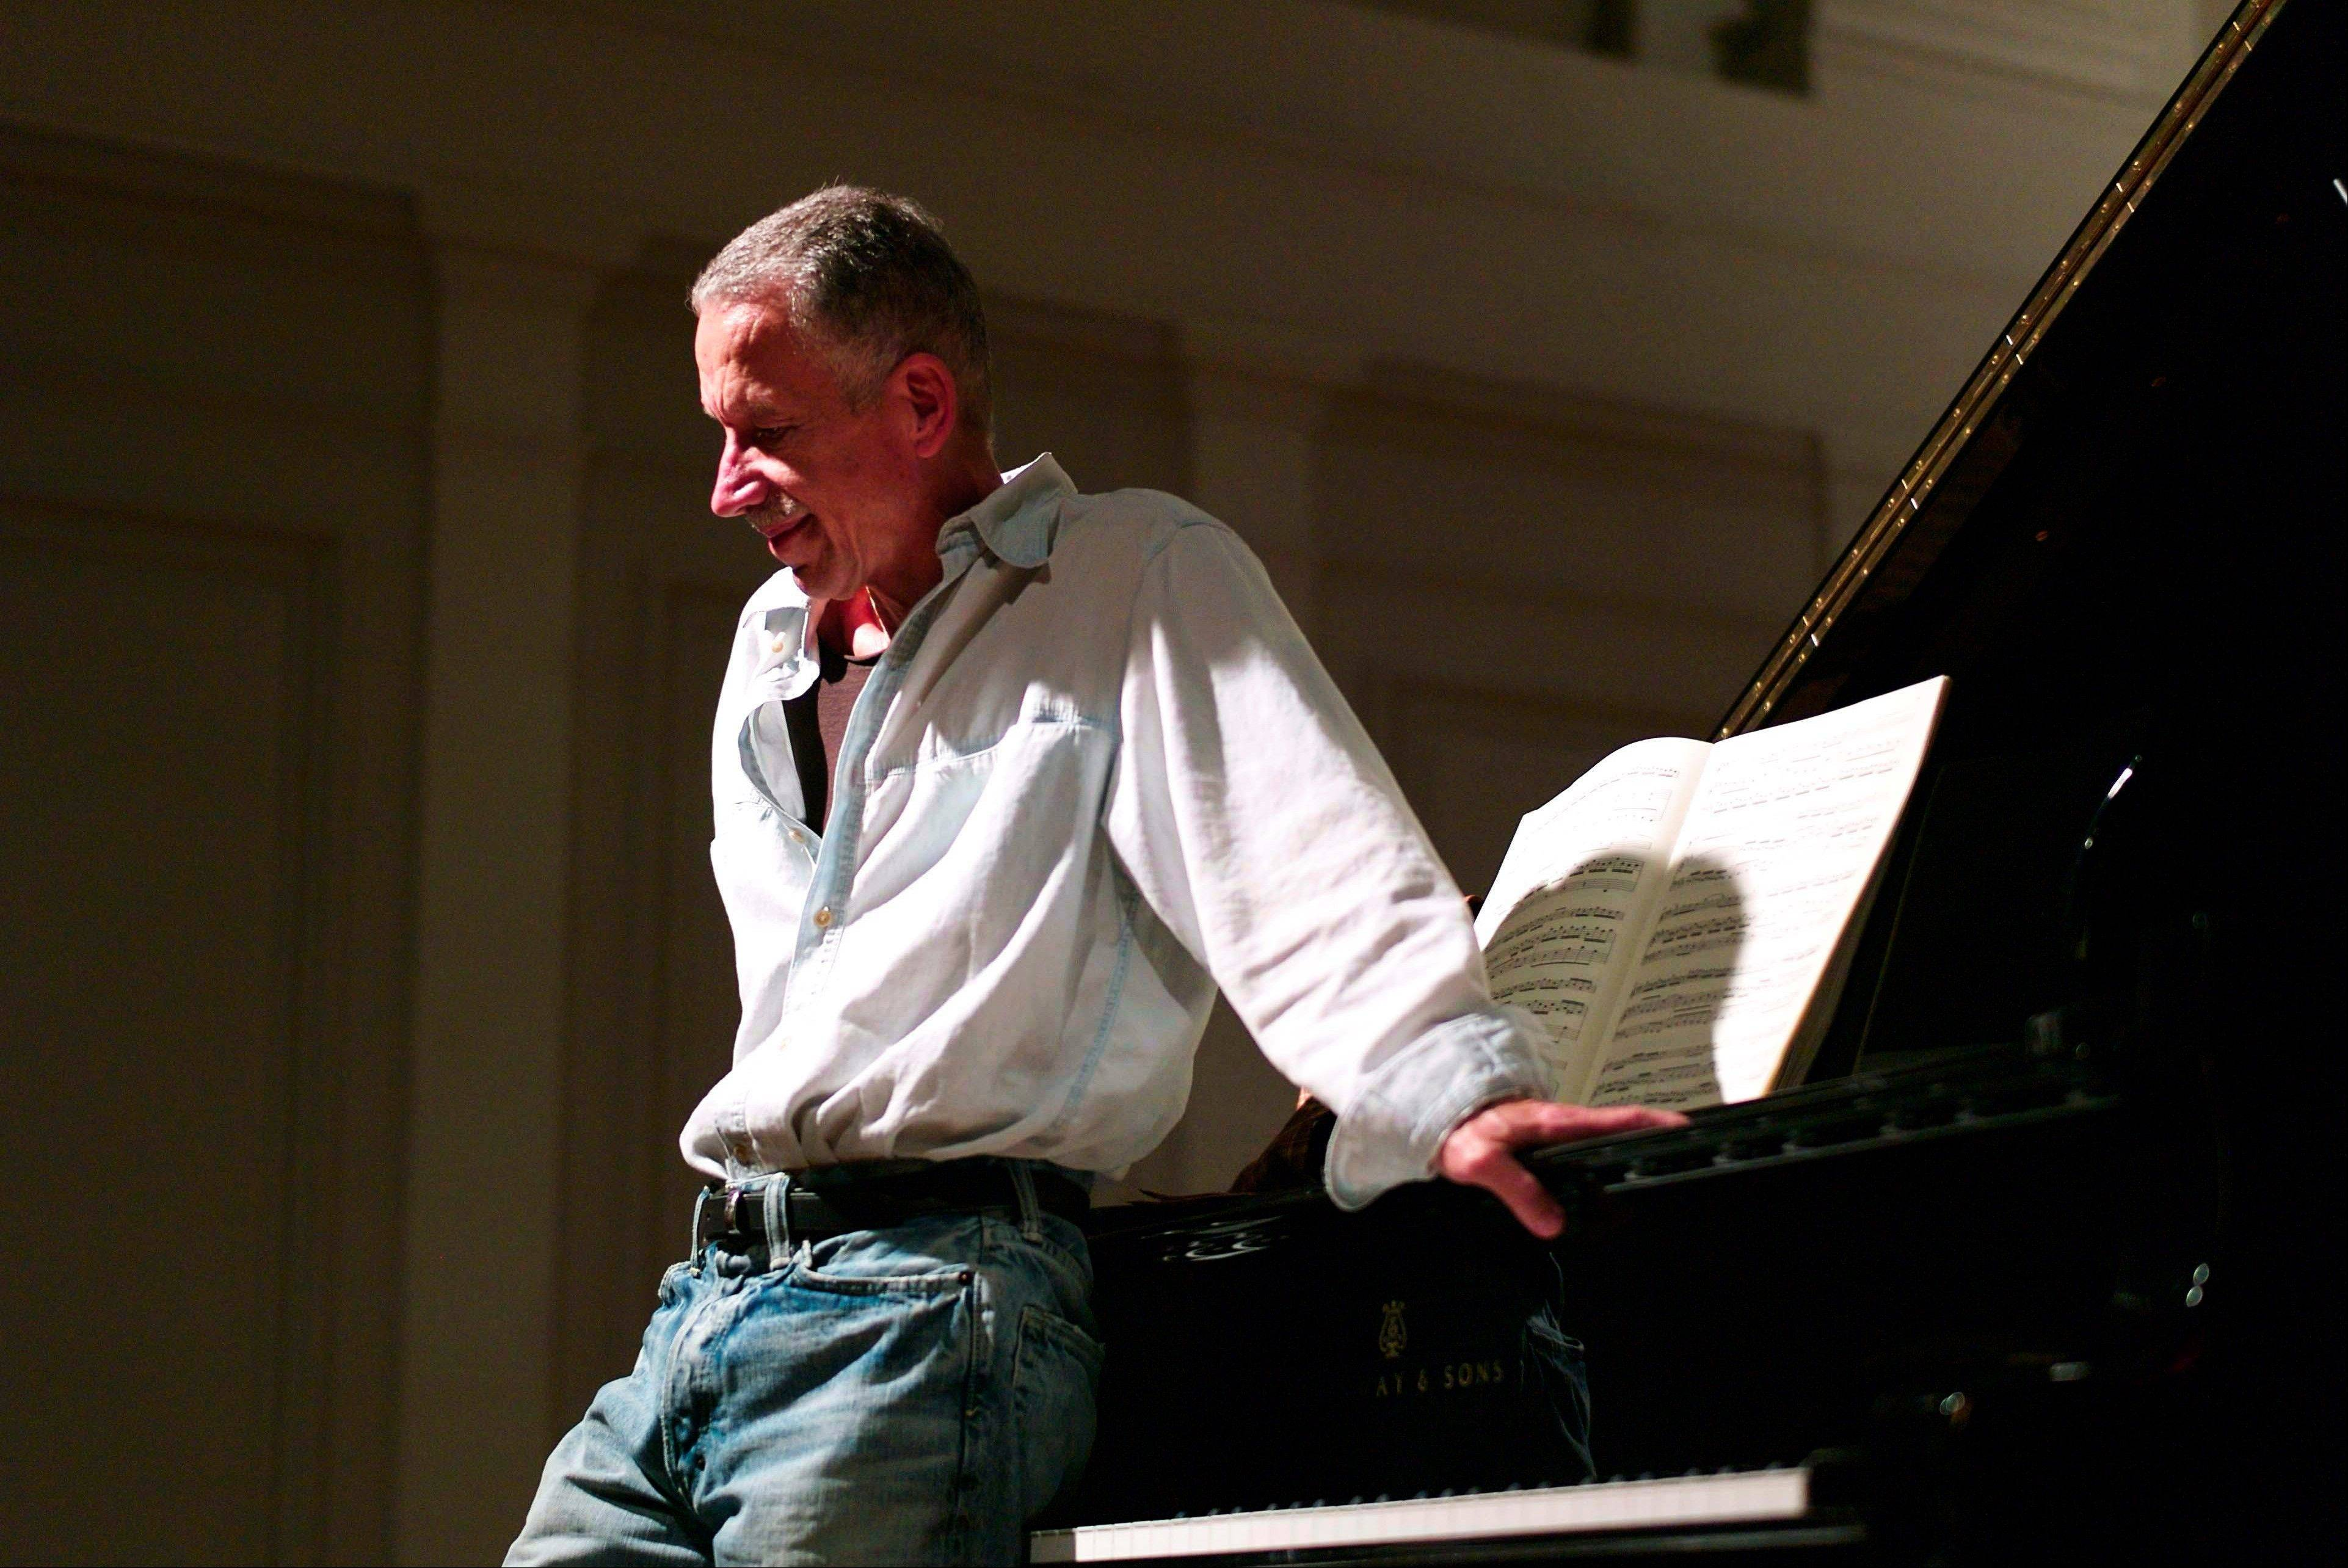 Keith Jarrett performs at the American Academy of Arts and Letters in New York. �Everybody has a limited lifespan and I wanted to use mine intelligently,� the 68-year-old Jarrett said. �I felt that if I had been called to do anything it was to make music.�